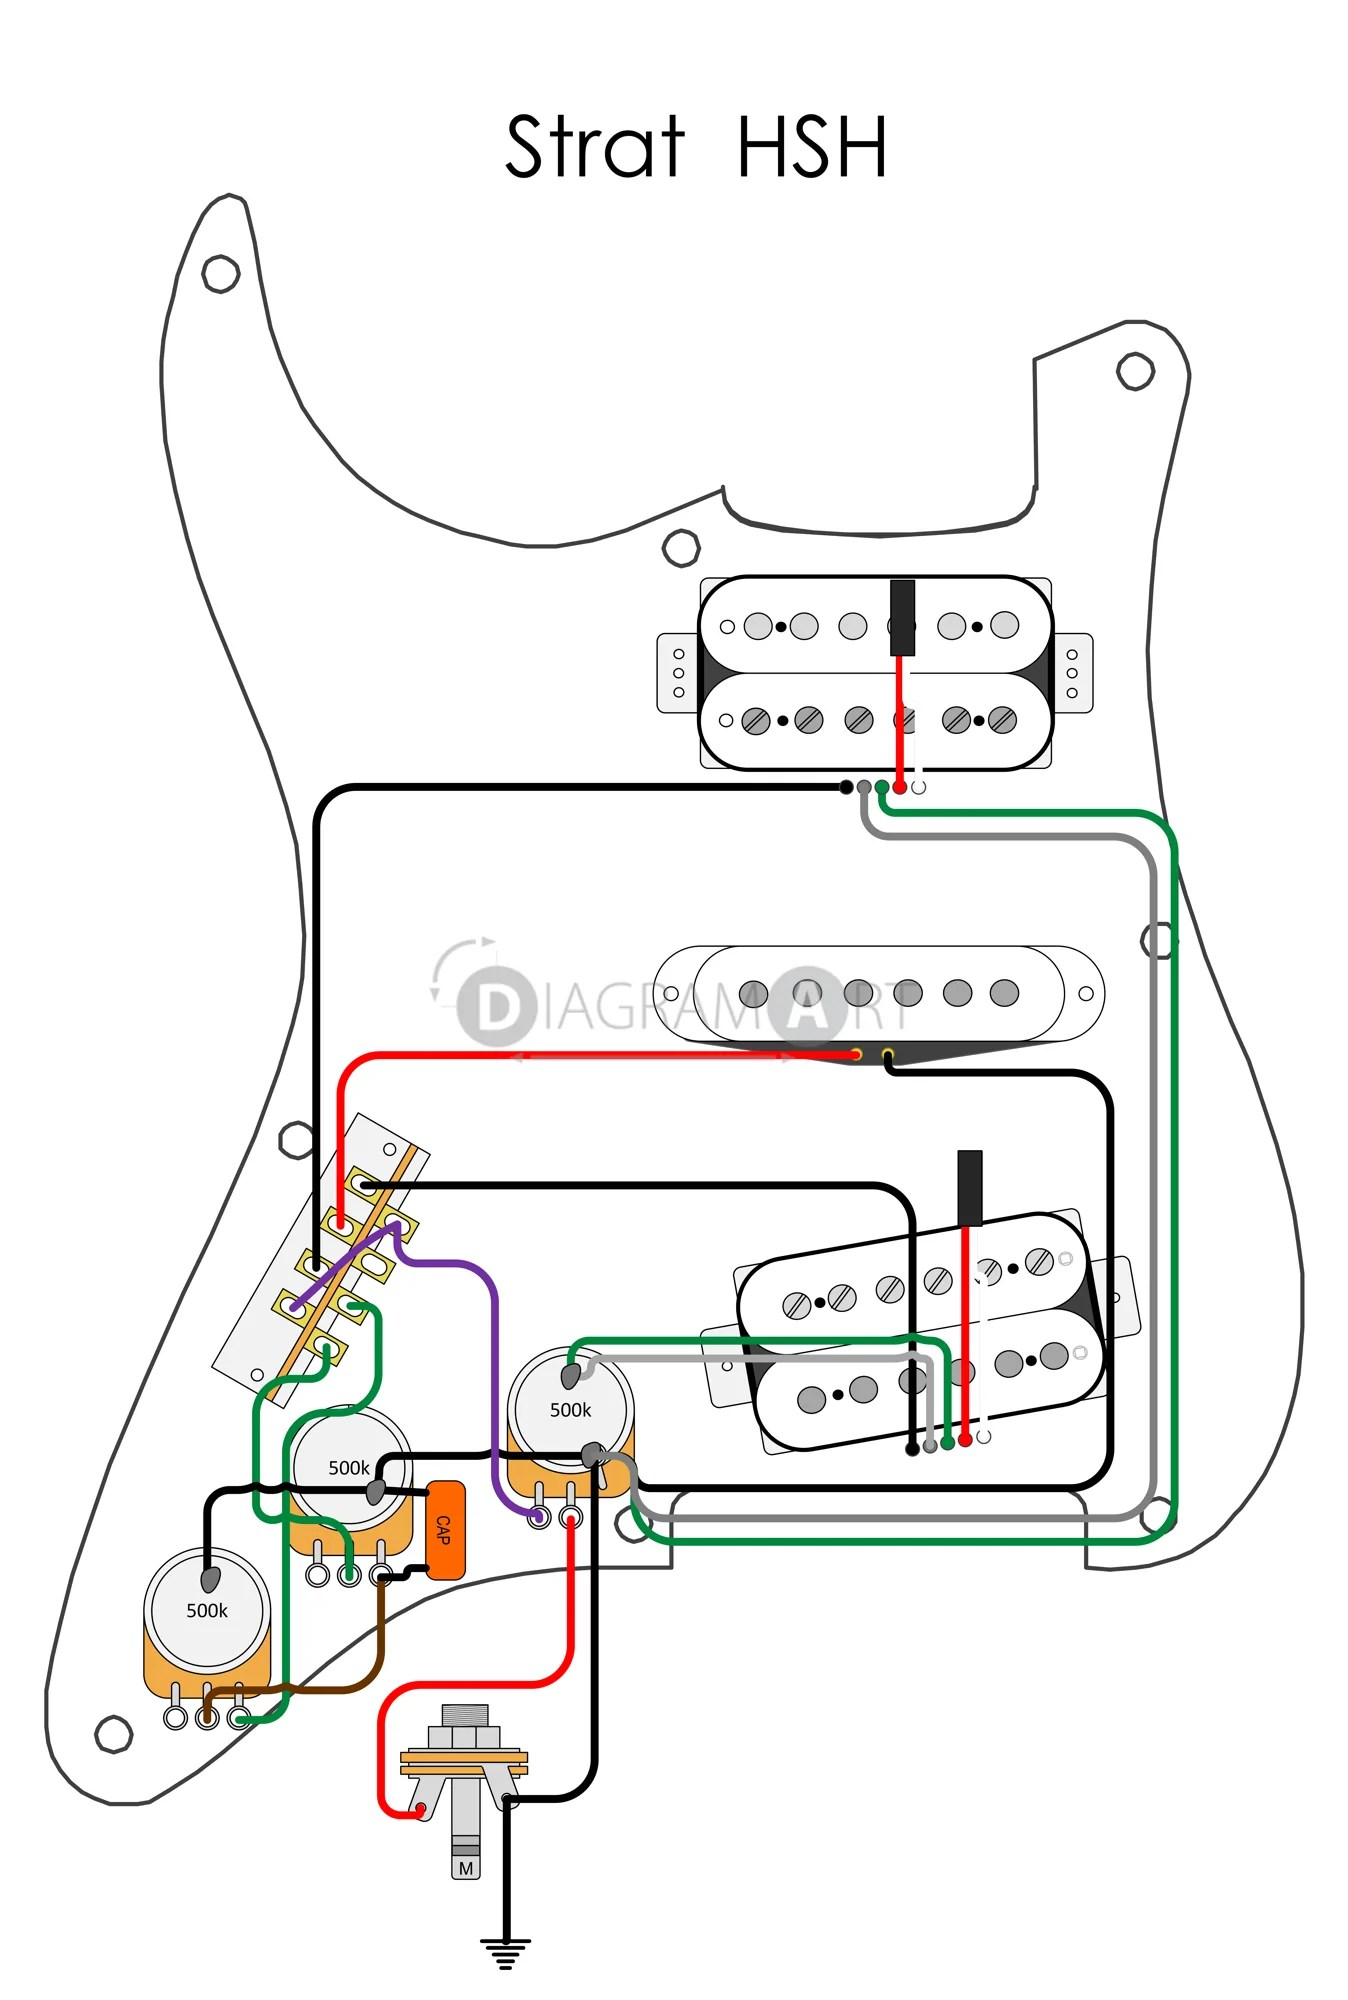 small resolution of electric guitar wiring wiring diagram detailed humbucker pickup wiring diagram electric guitar wiring strat hsh